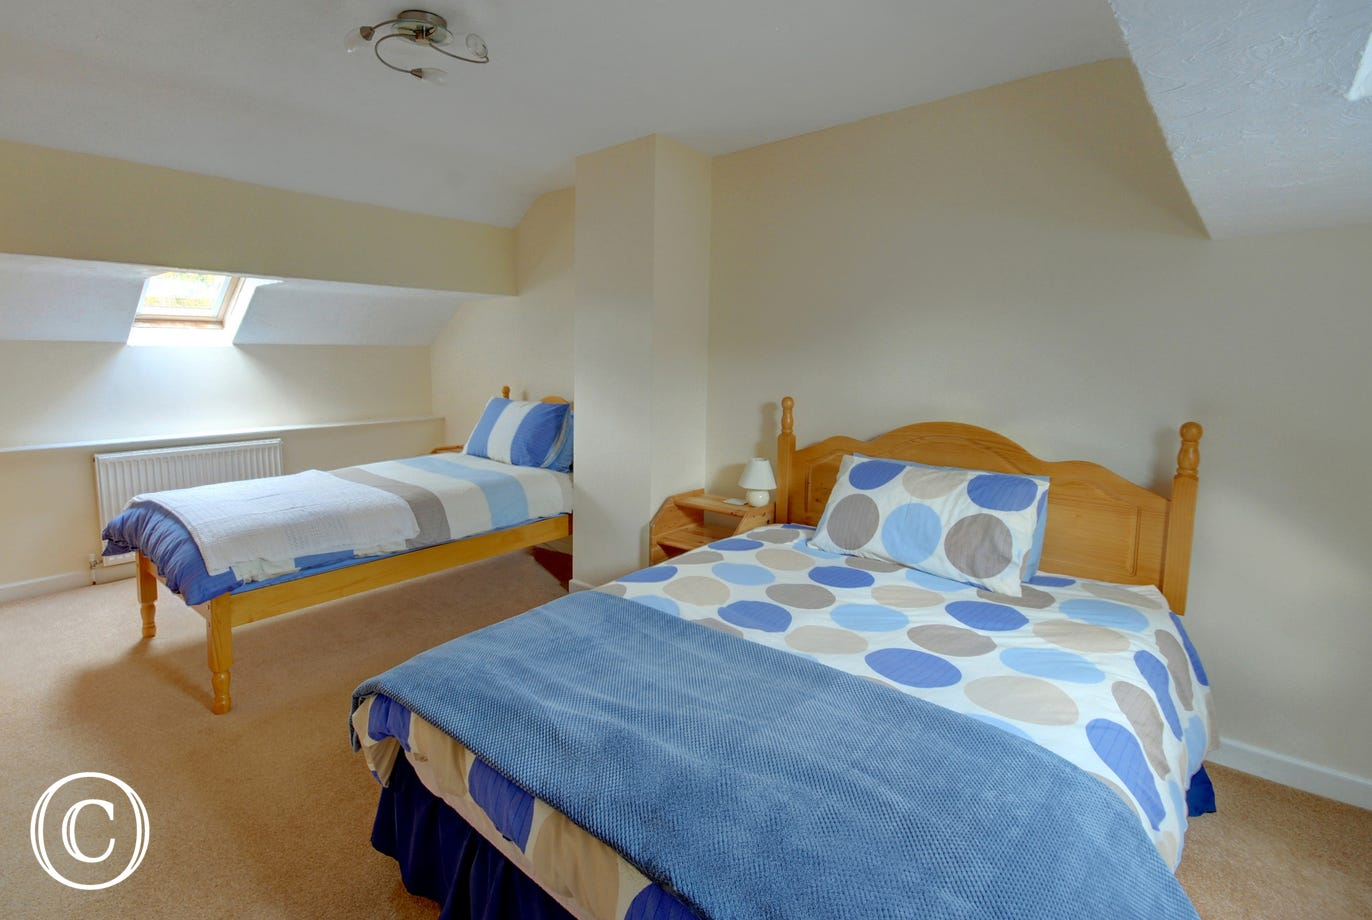 The stylish second bedroom comfortably takes both a double bed and a single bed, a wonderful bonus for flexible sleeping arrangements